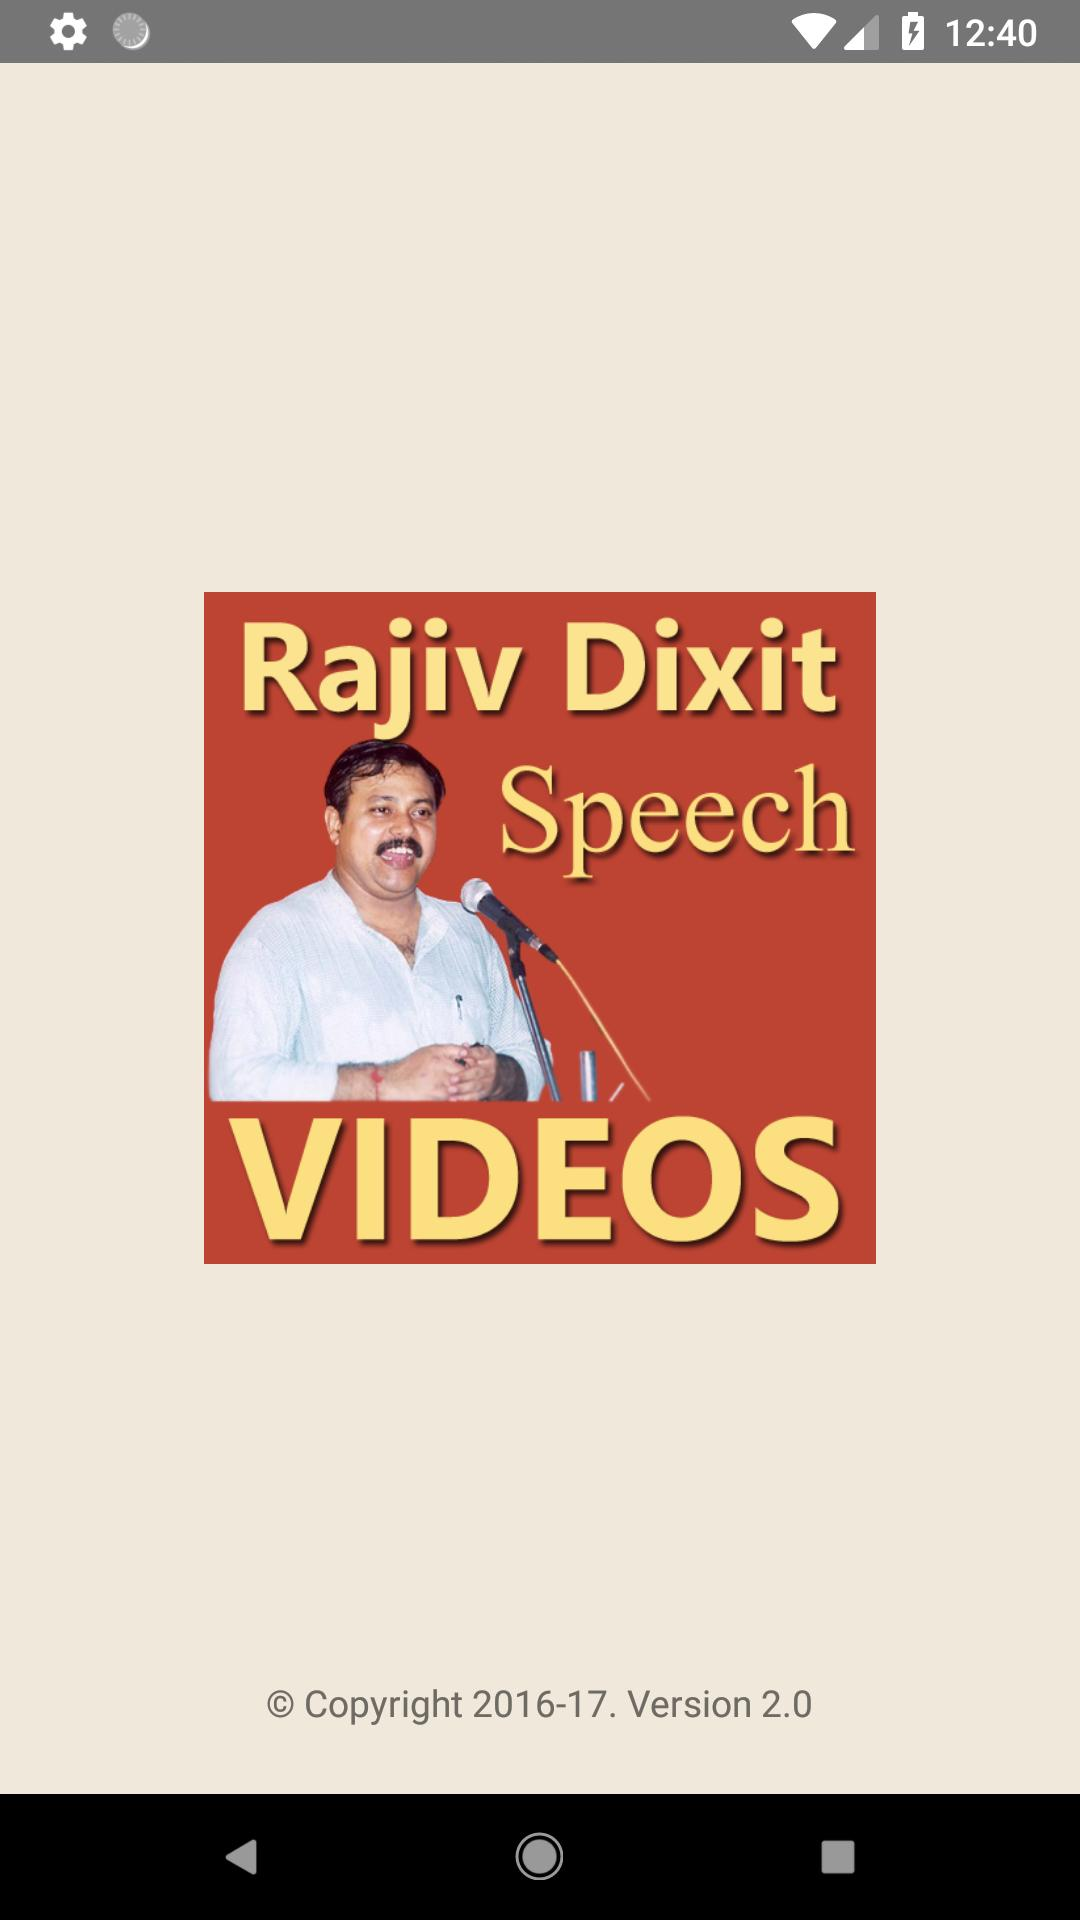 Rajiv Dixit Speech VIDEOs for Android - APK Download